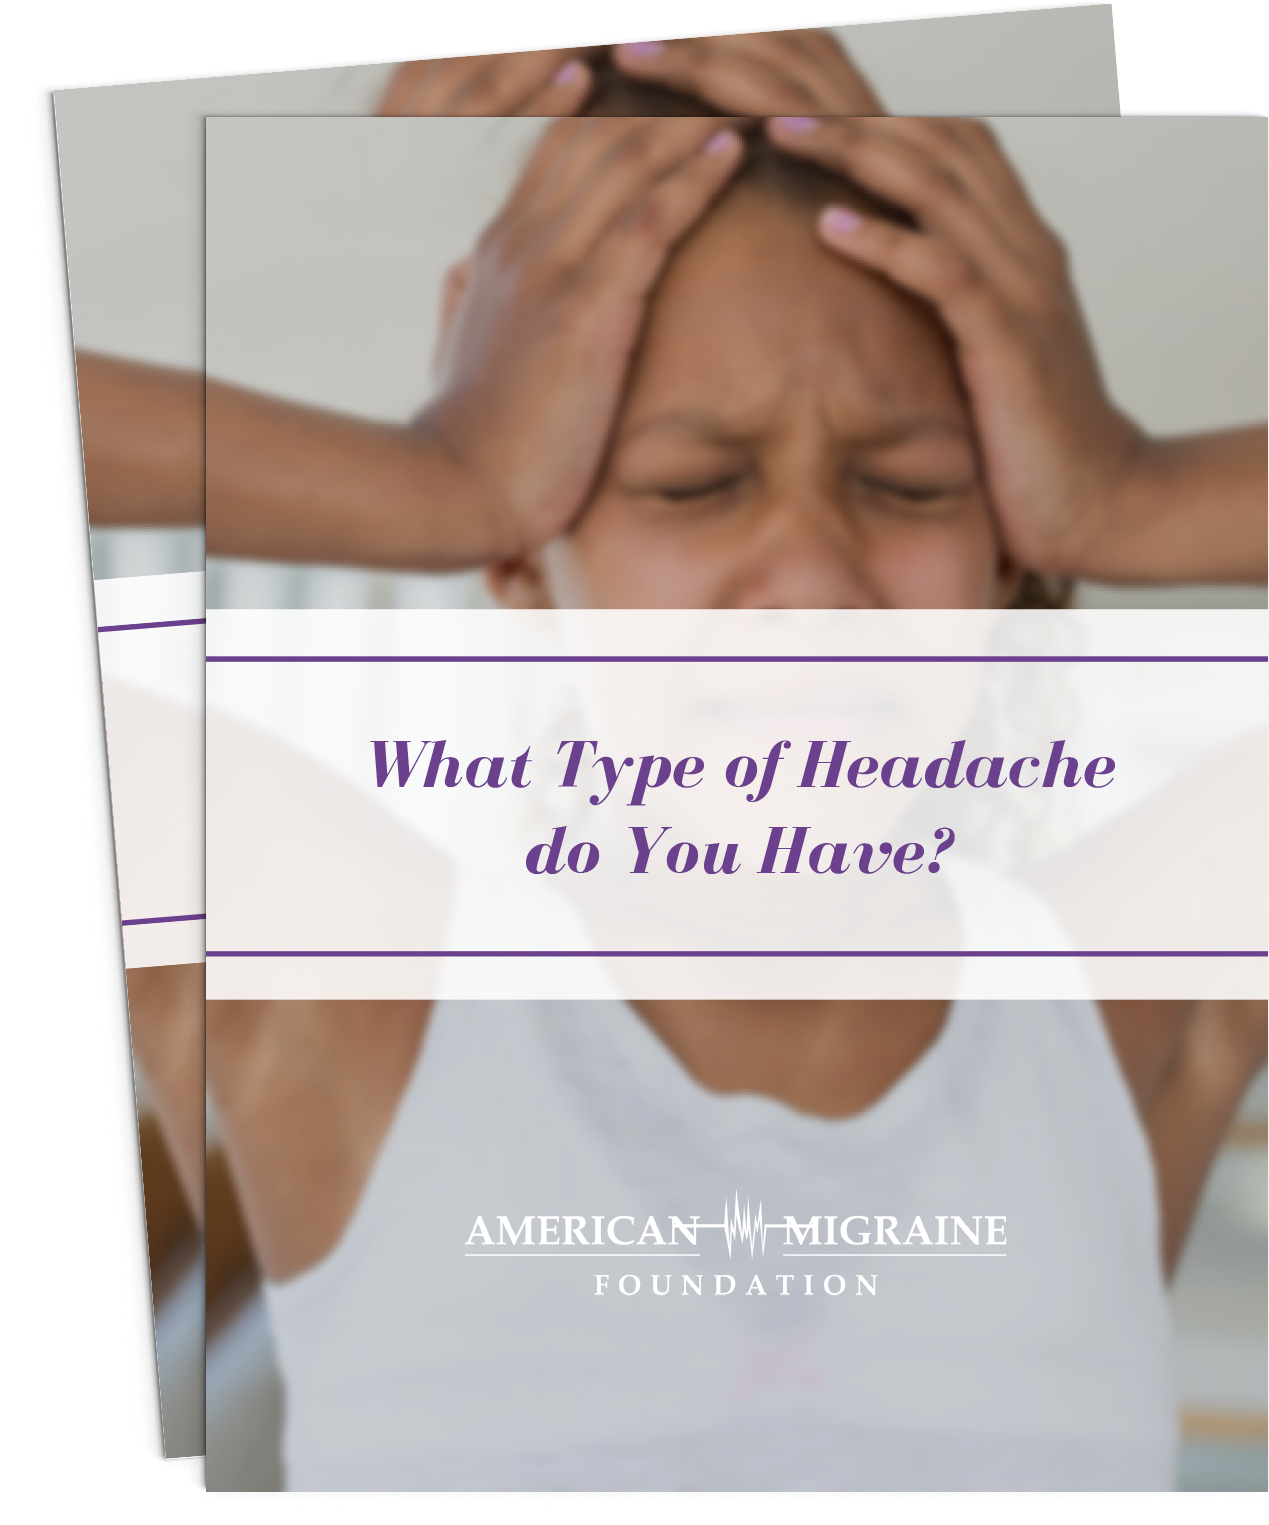 What Type of Headache do You Have.png